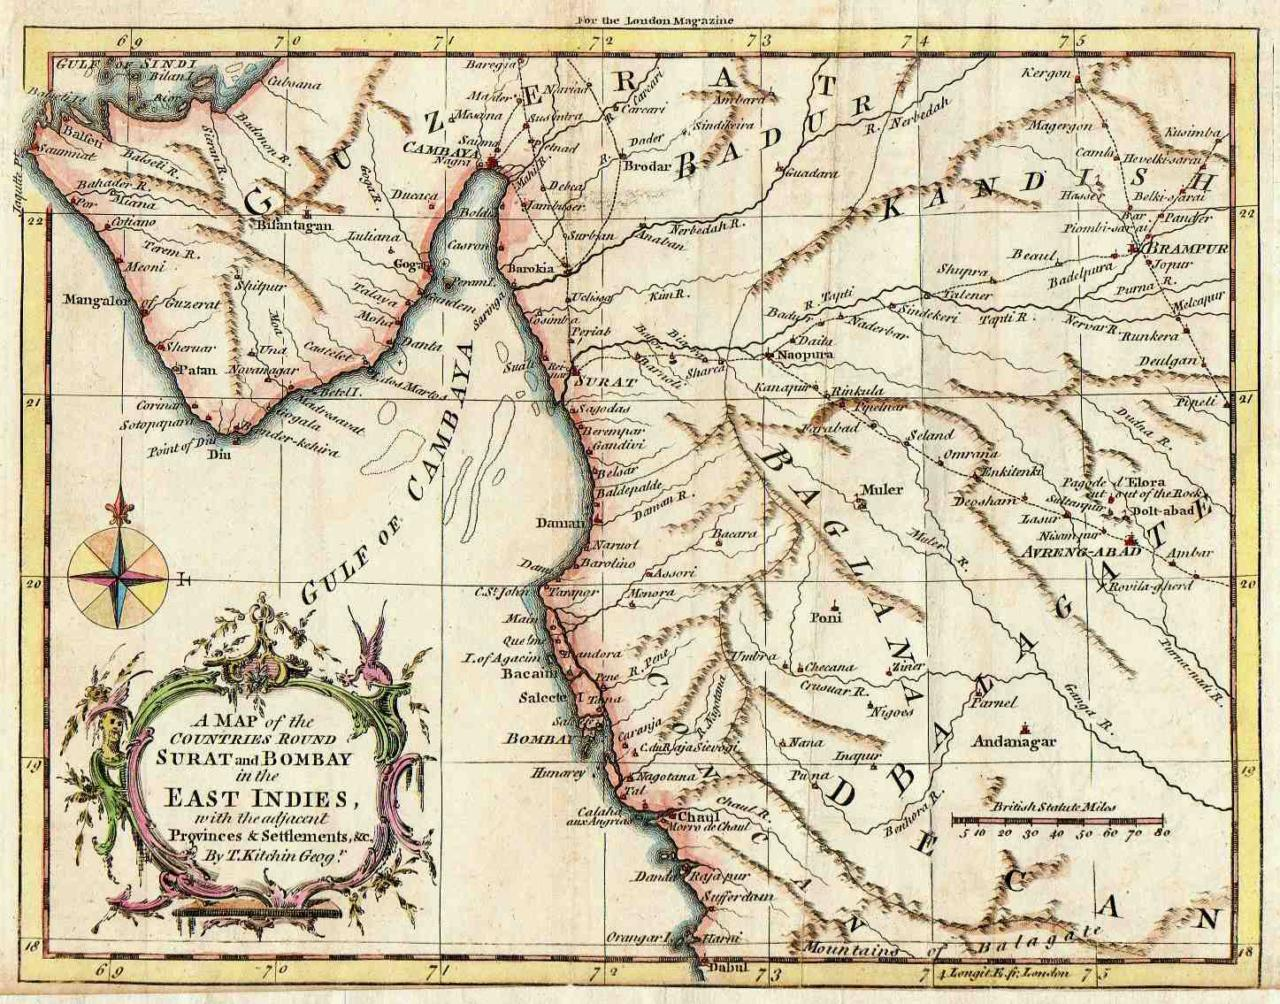 BOMBAY SURAT A MAP OF THE COUNTRIES AROUND SURAT AND BOMBAY